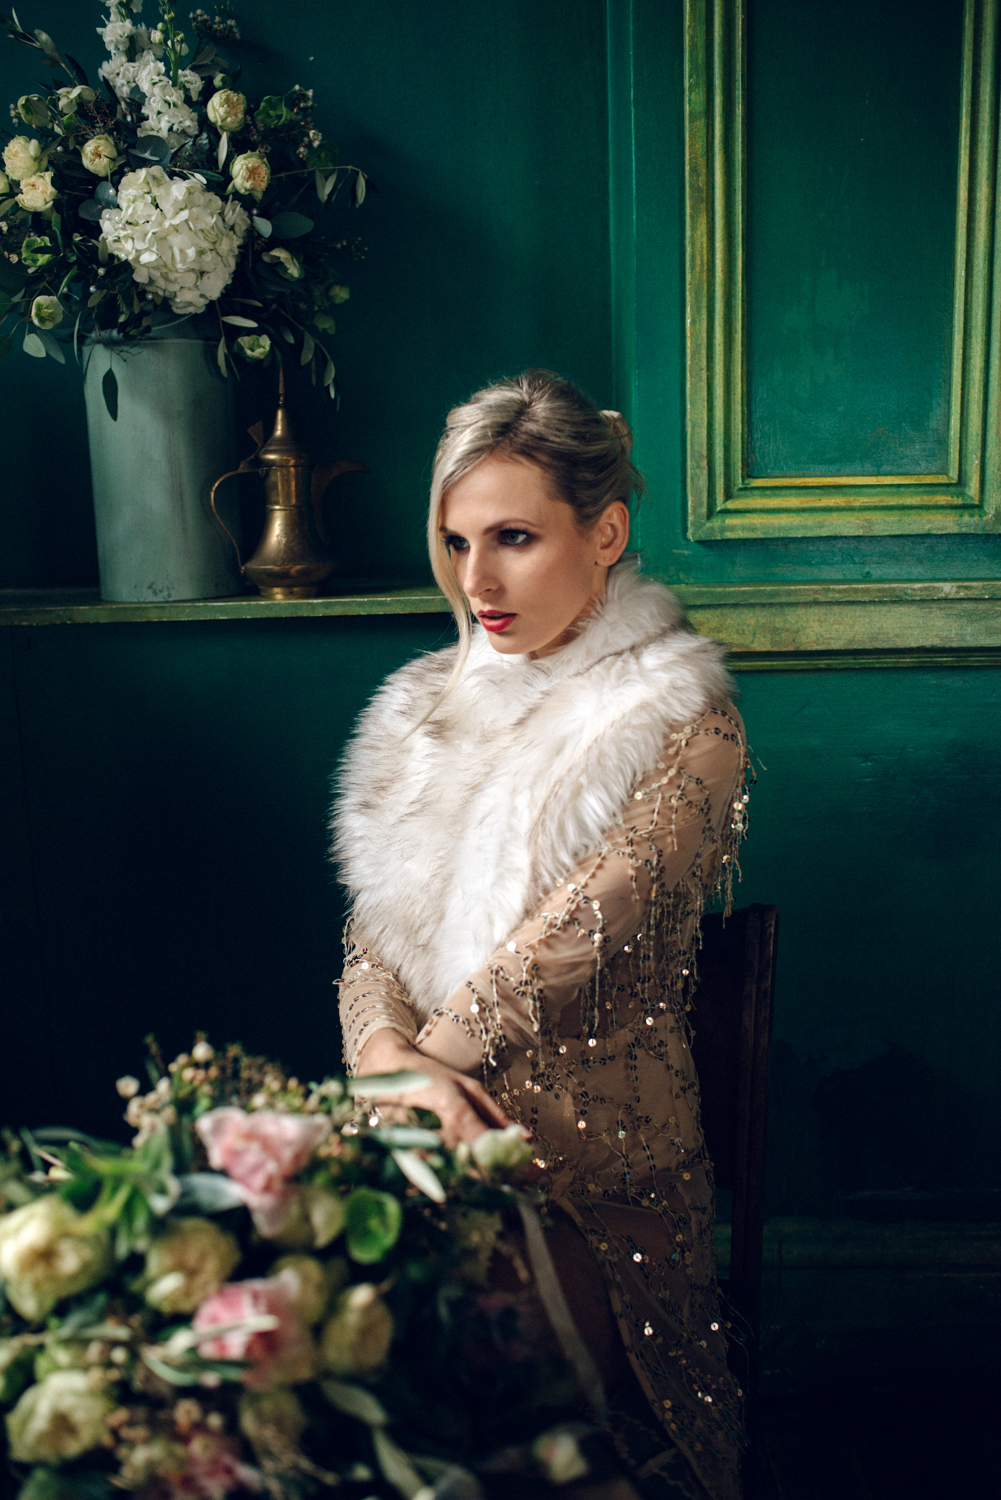 Margo Ryszczuk Photography - Its all about the glitter, sparkle and shine art deco inspired wedding shoot 867643